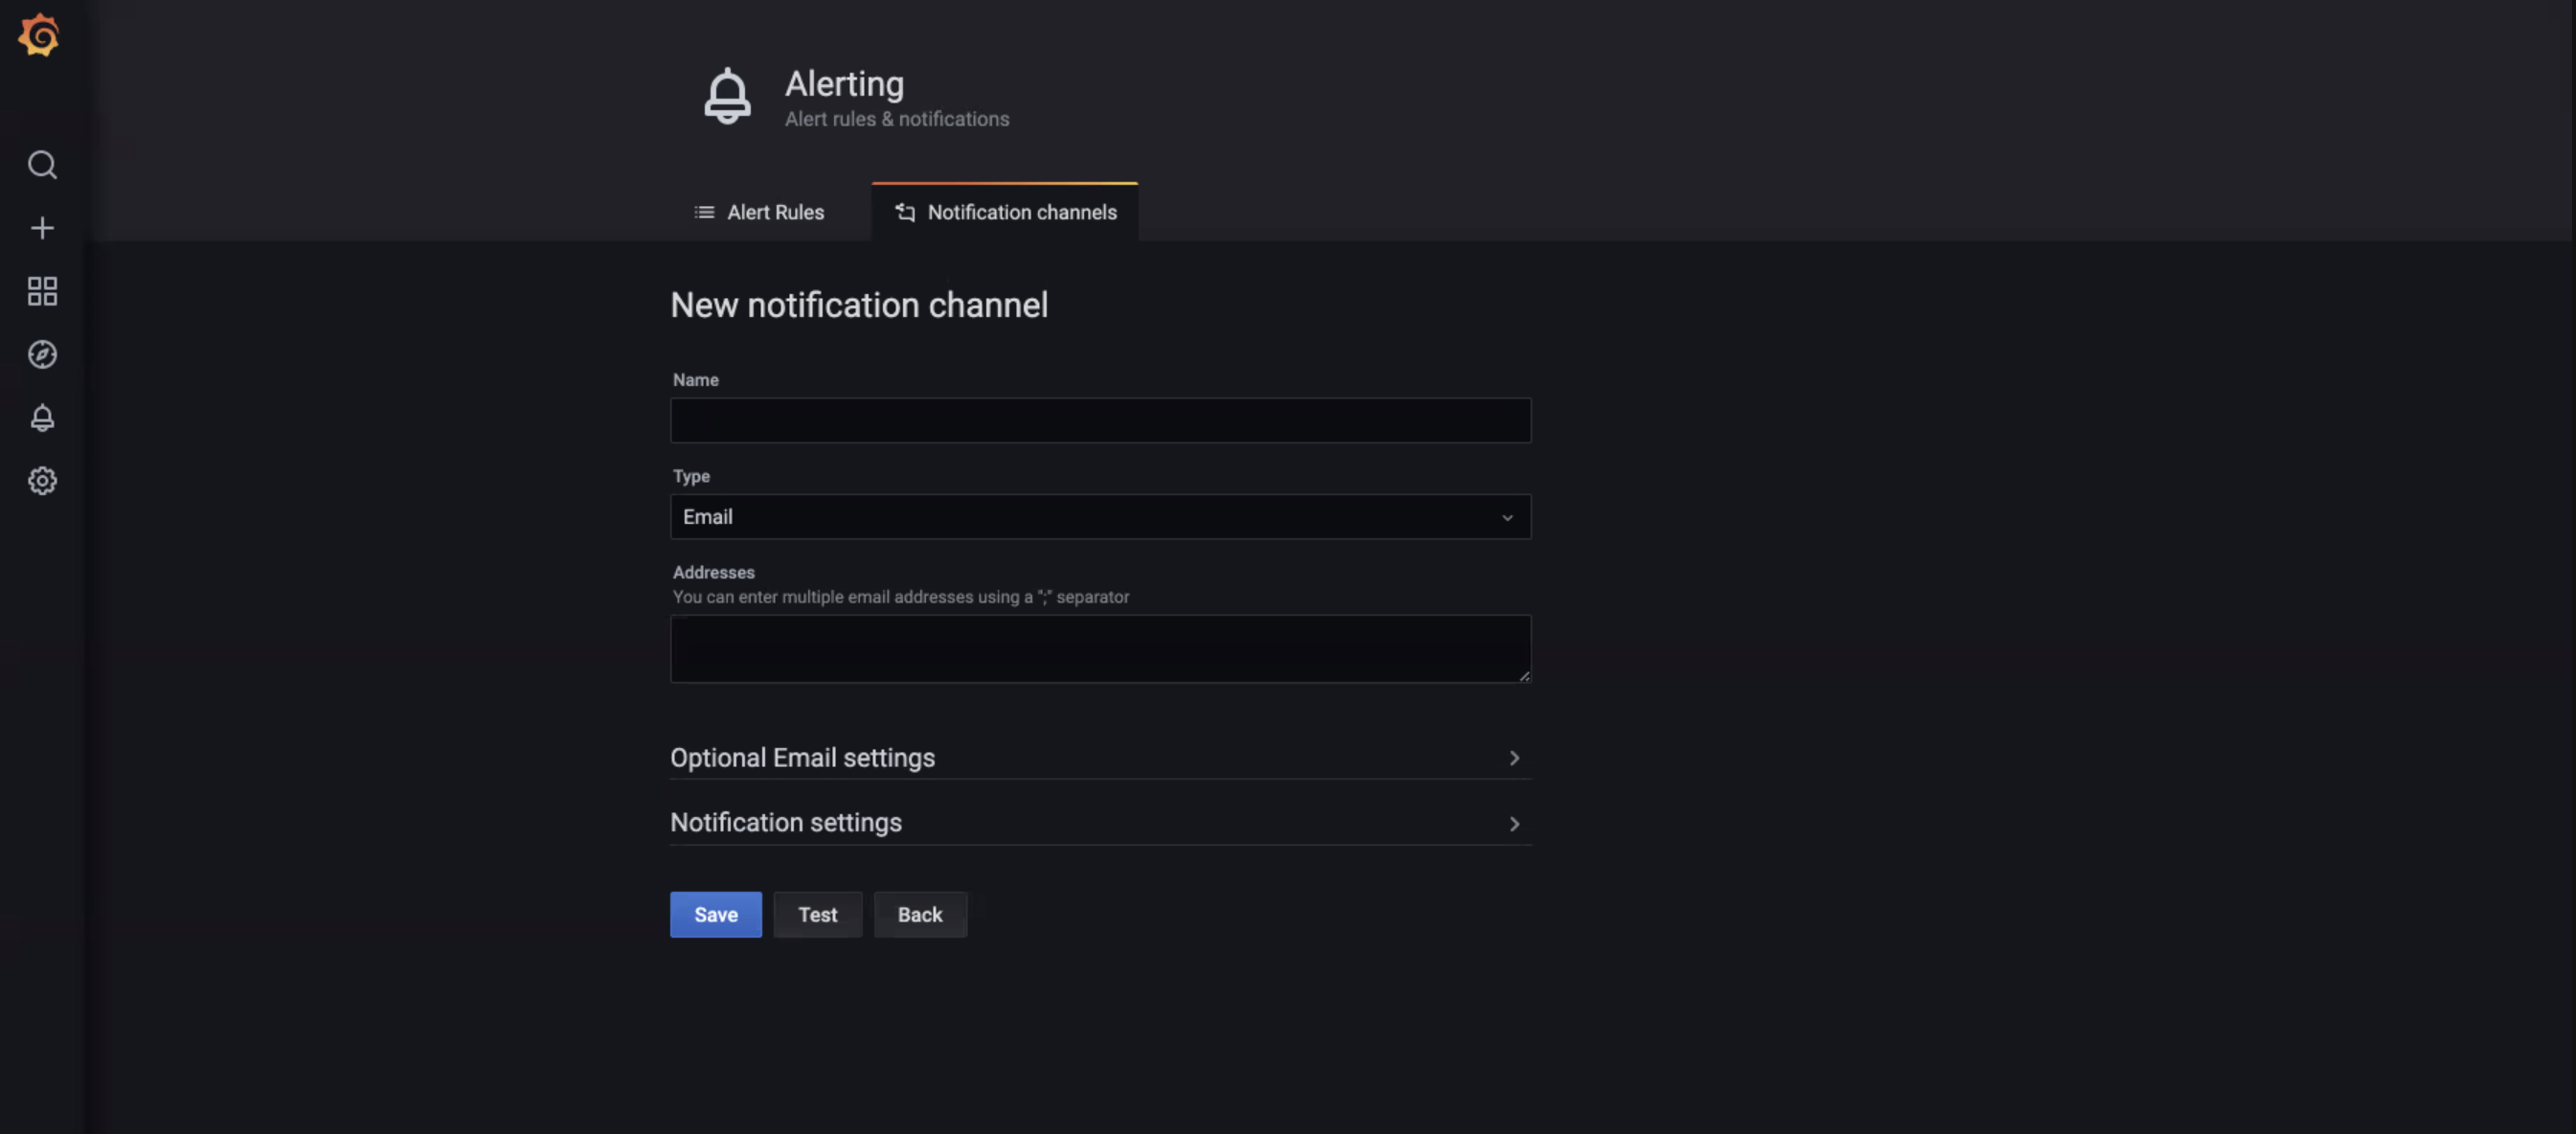 The Notification channel form.